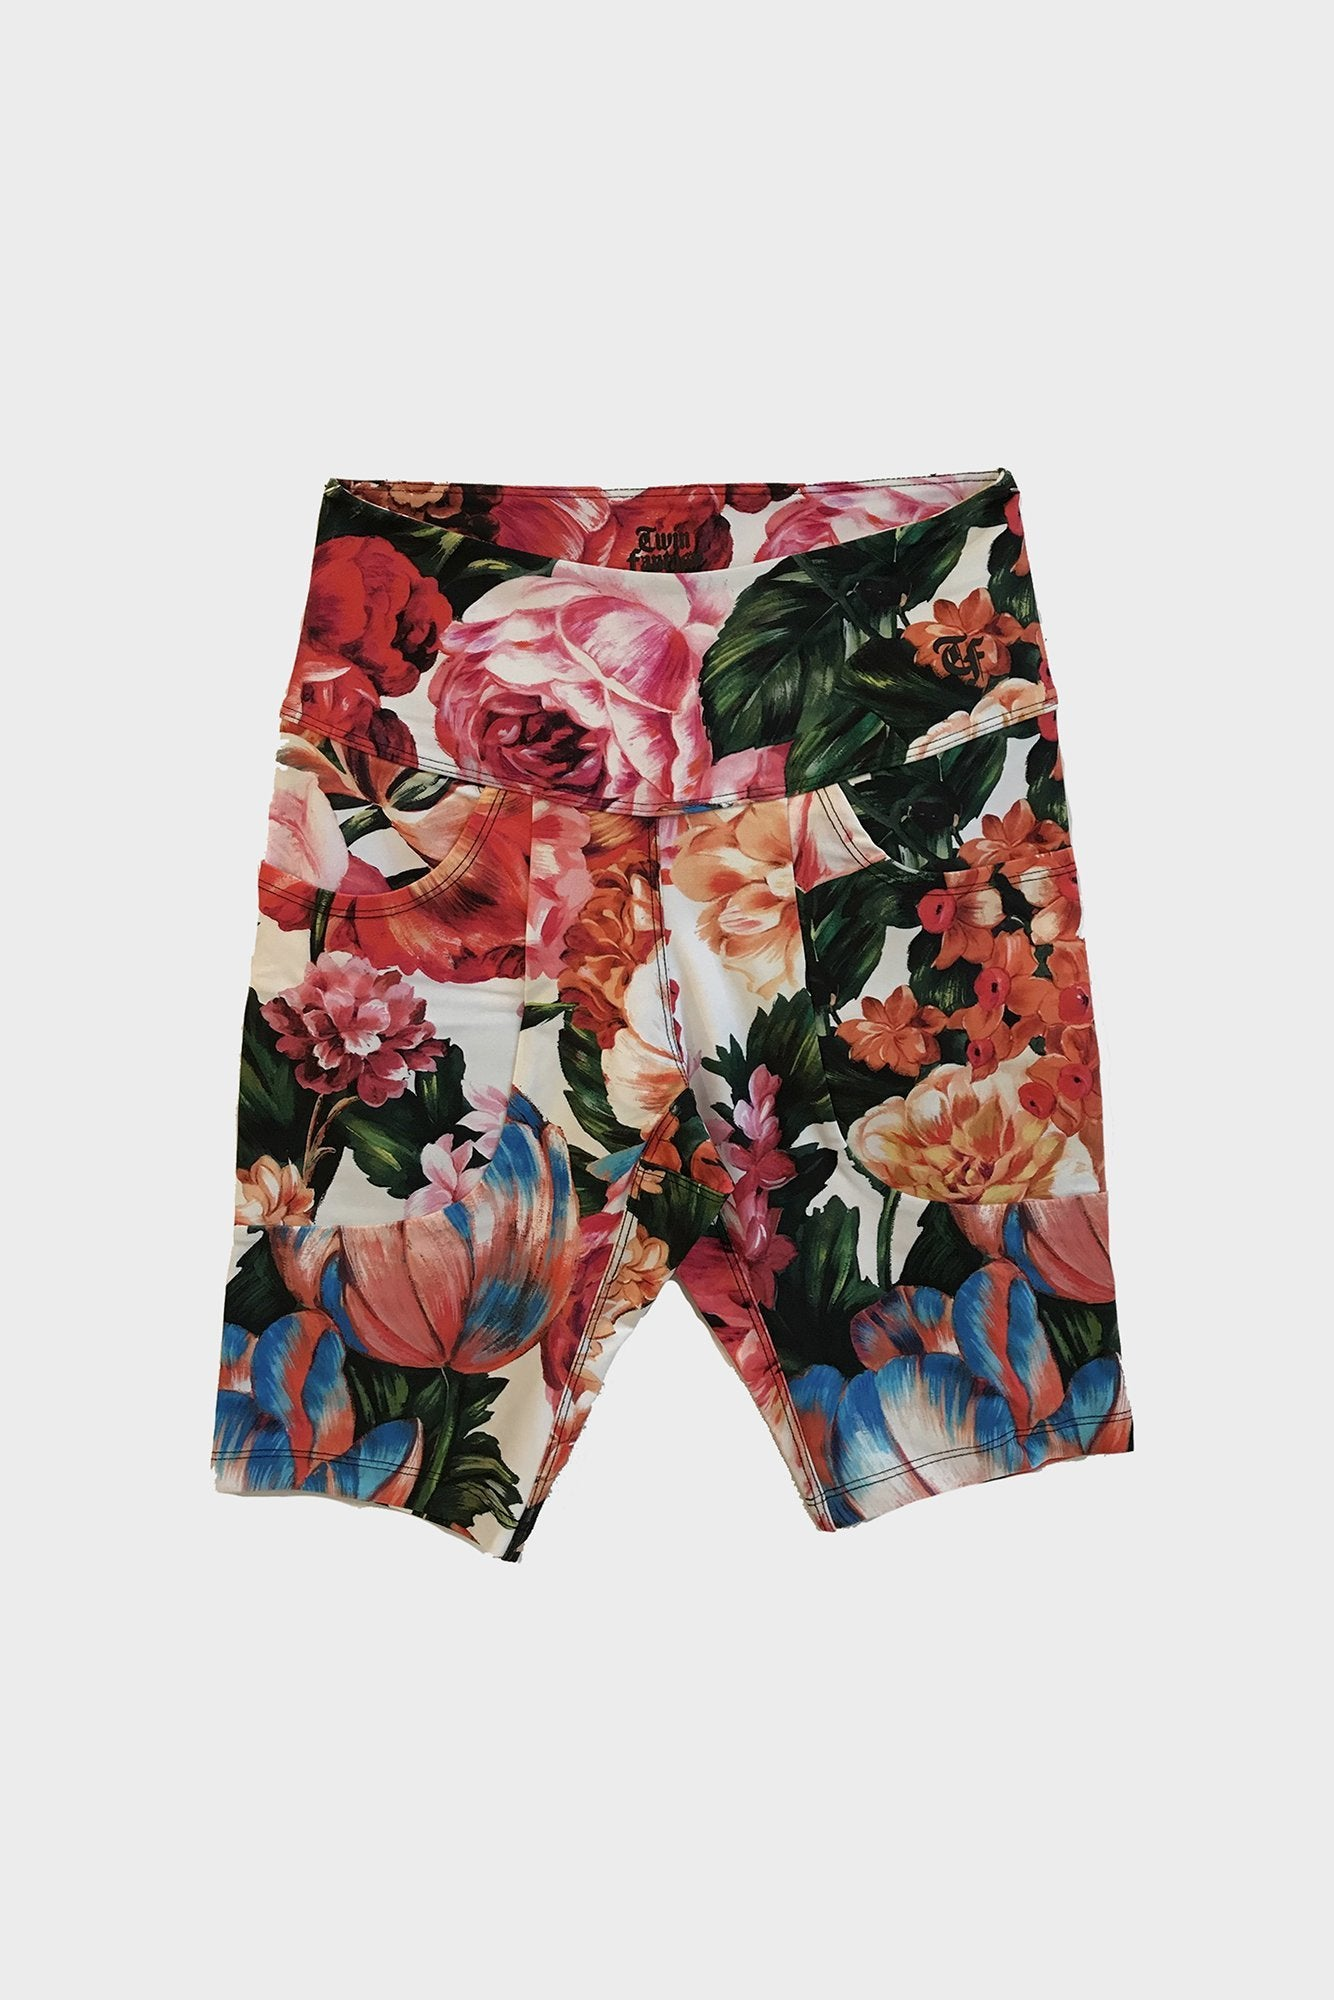 Patch Pocket Biker Short - White Multi Floral